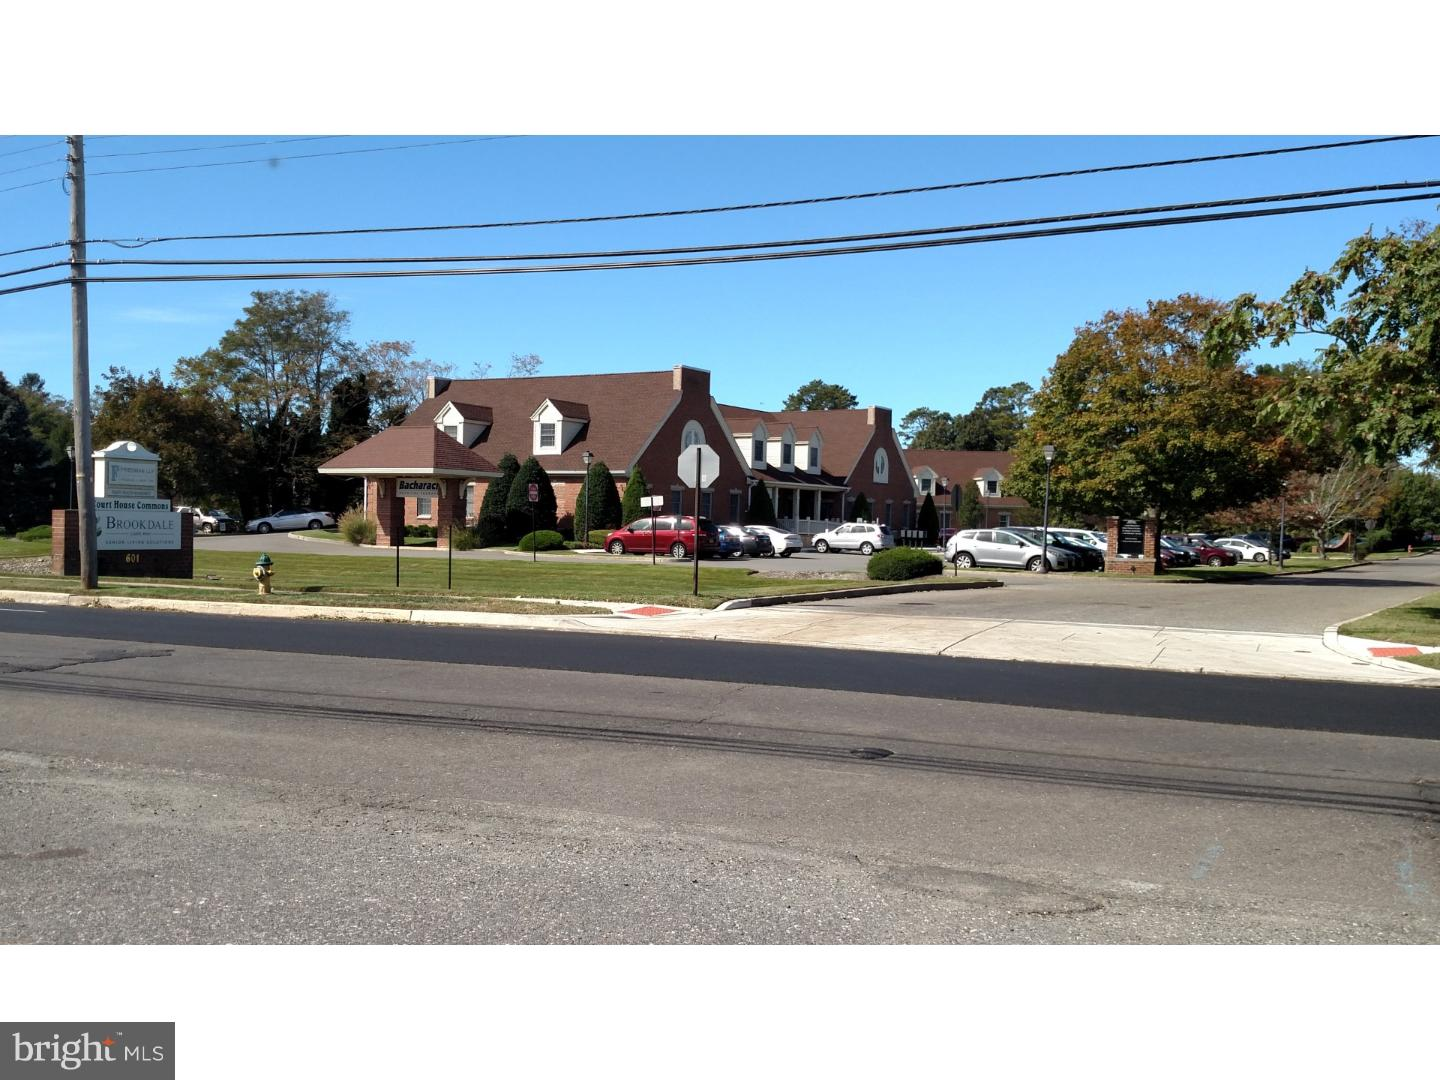 Single Family Home for Sale at 601 S ROUTE 9 S #A & B 601 S ROUTE 9 S #A & B, Cape May Court House, New Jersey 08210 United States